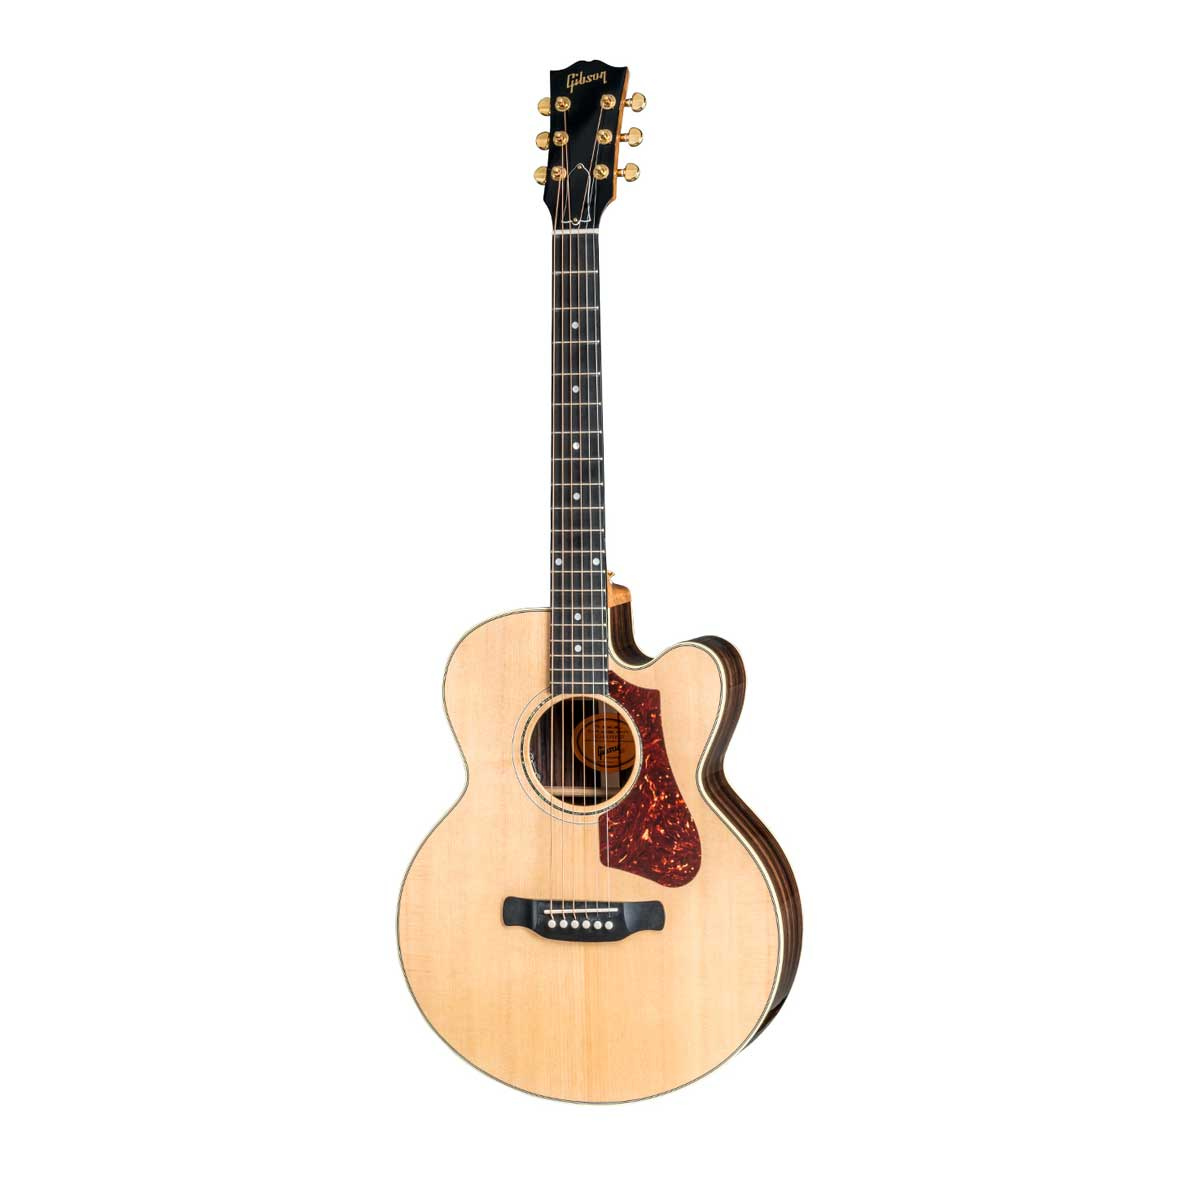 Gibson Parlor Rosewood Avant Garde 2018 western-guitar antique natural